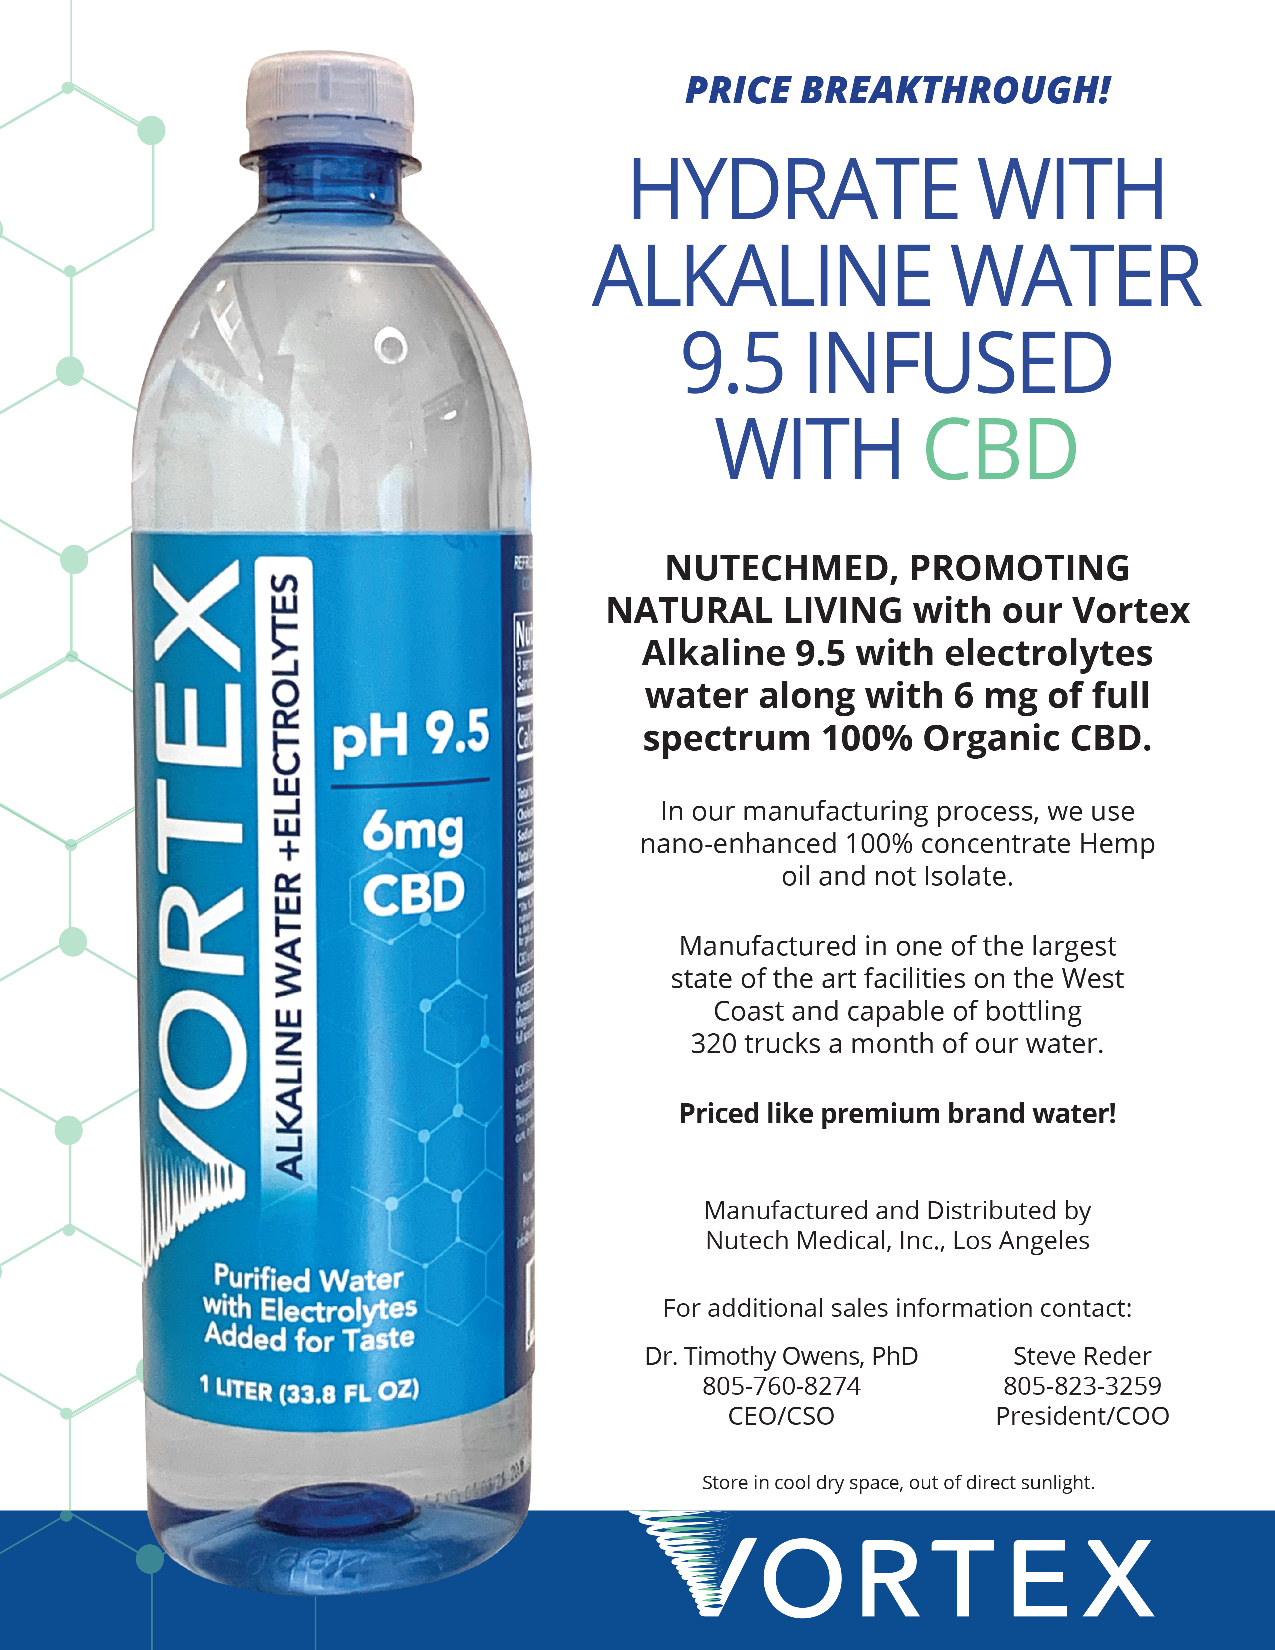 vortexcbdwater – Hydrate With Alkaline Water 9 5 Infused With CBD